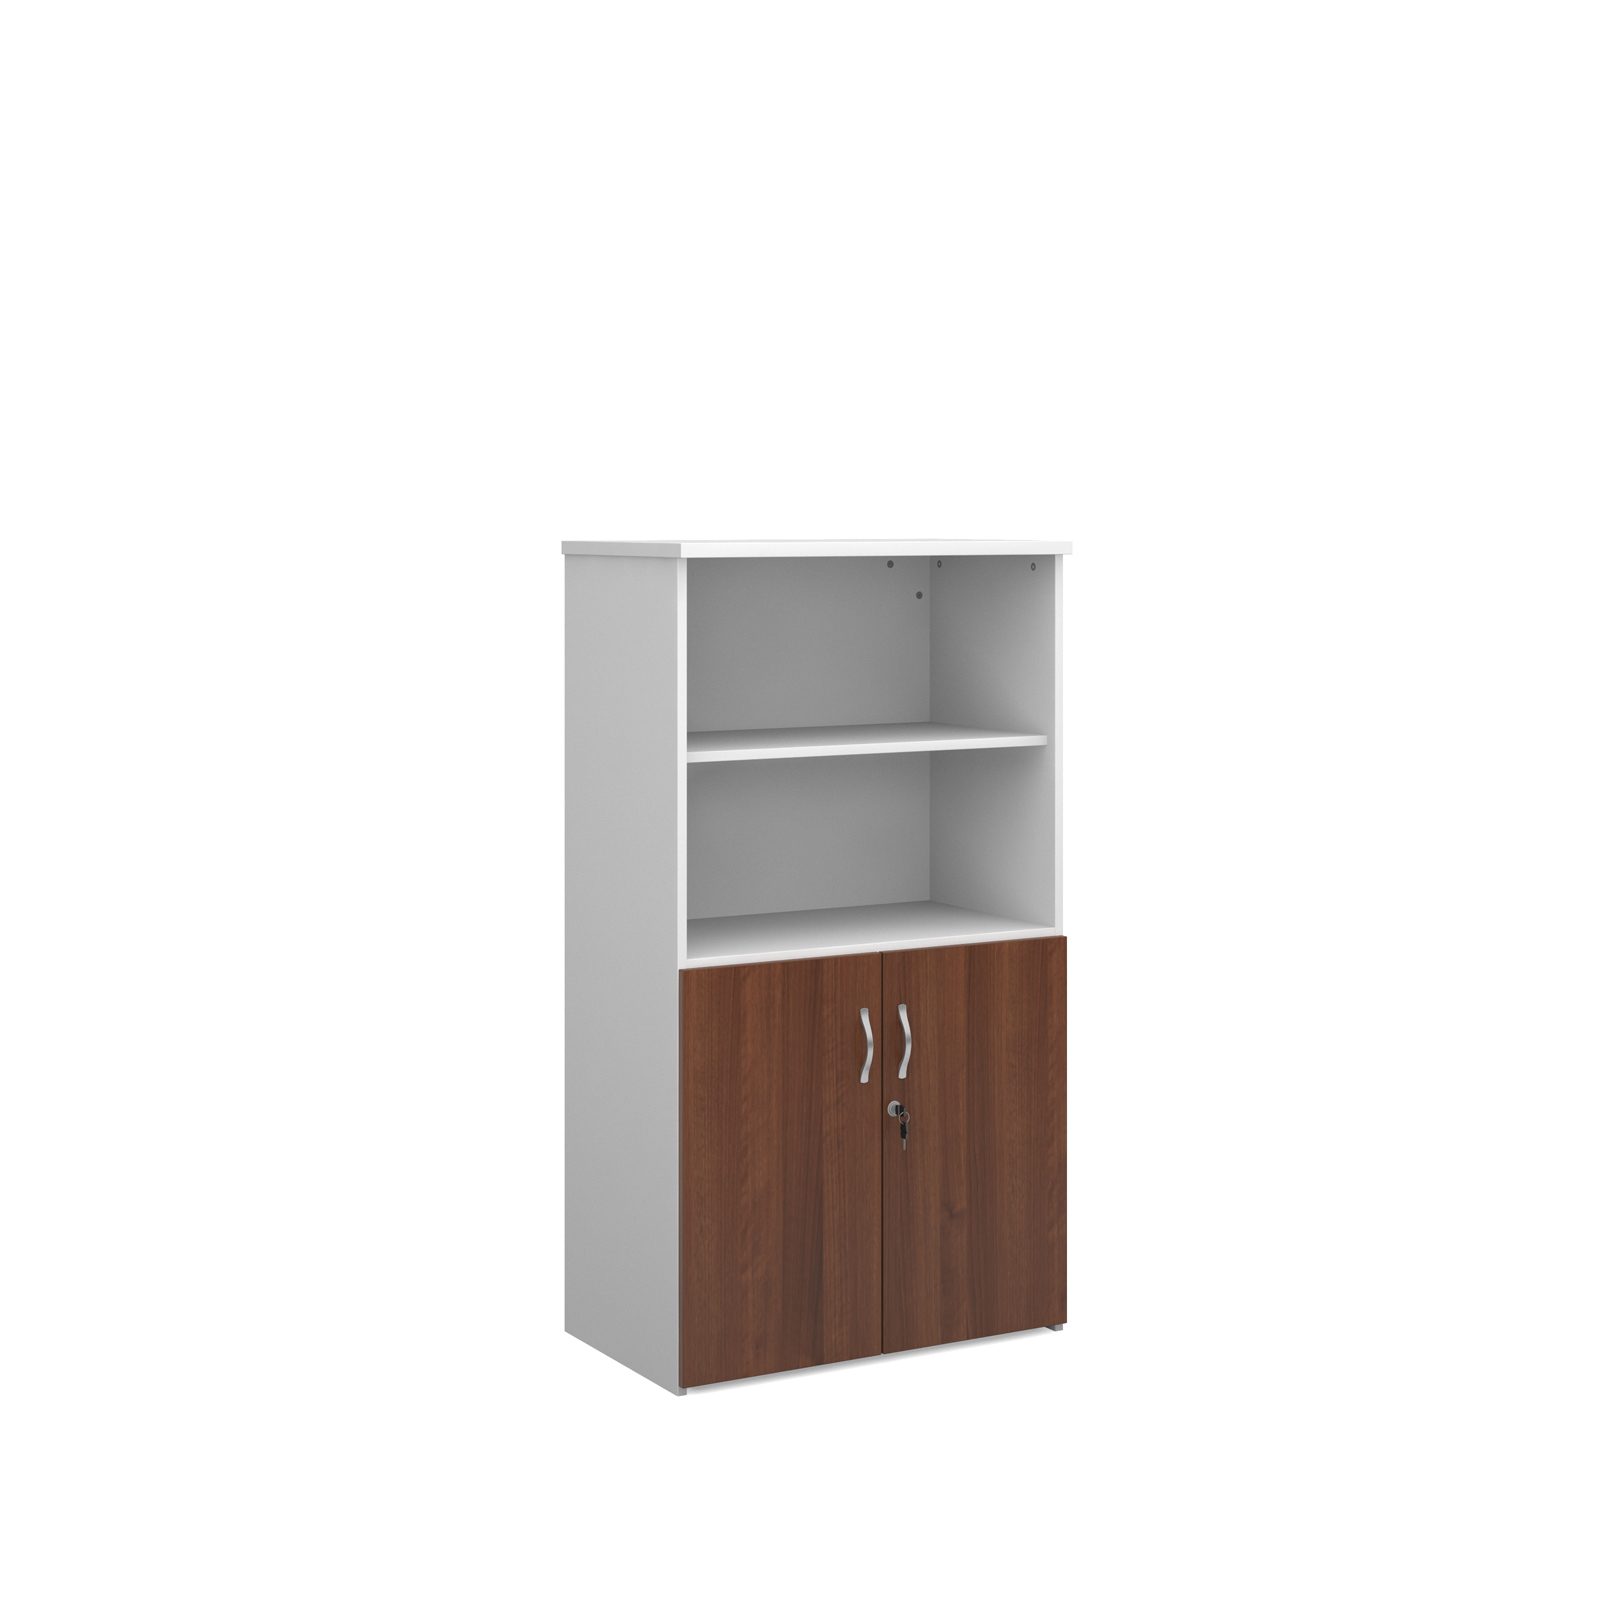 Fullsize Of 3 Shelf Bookcase